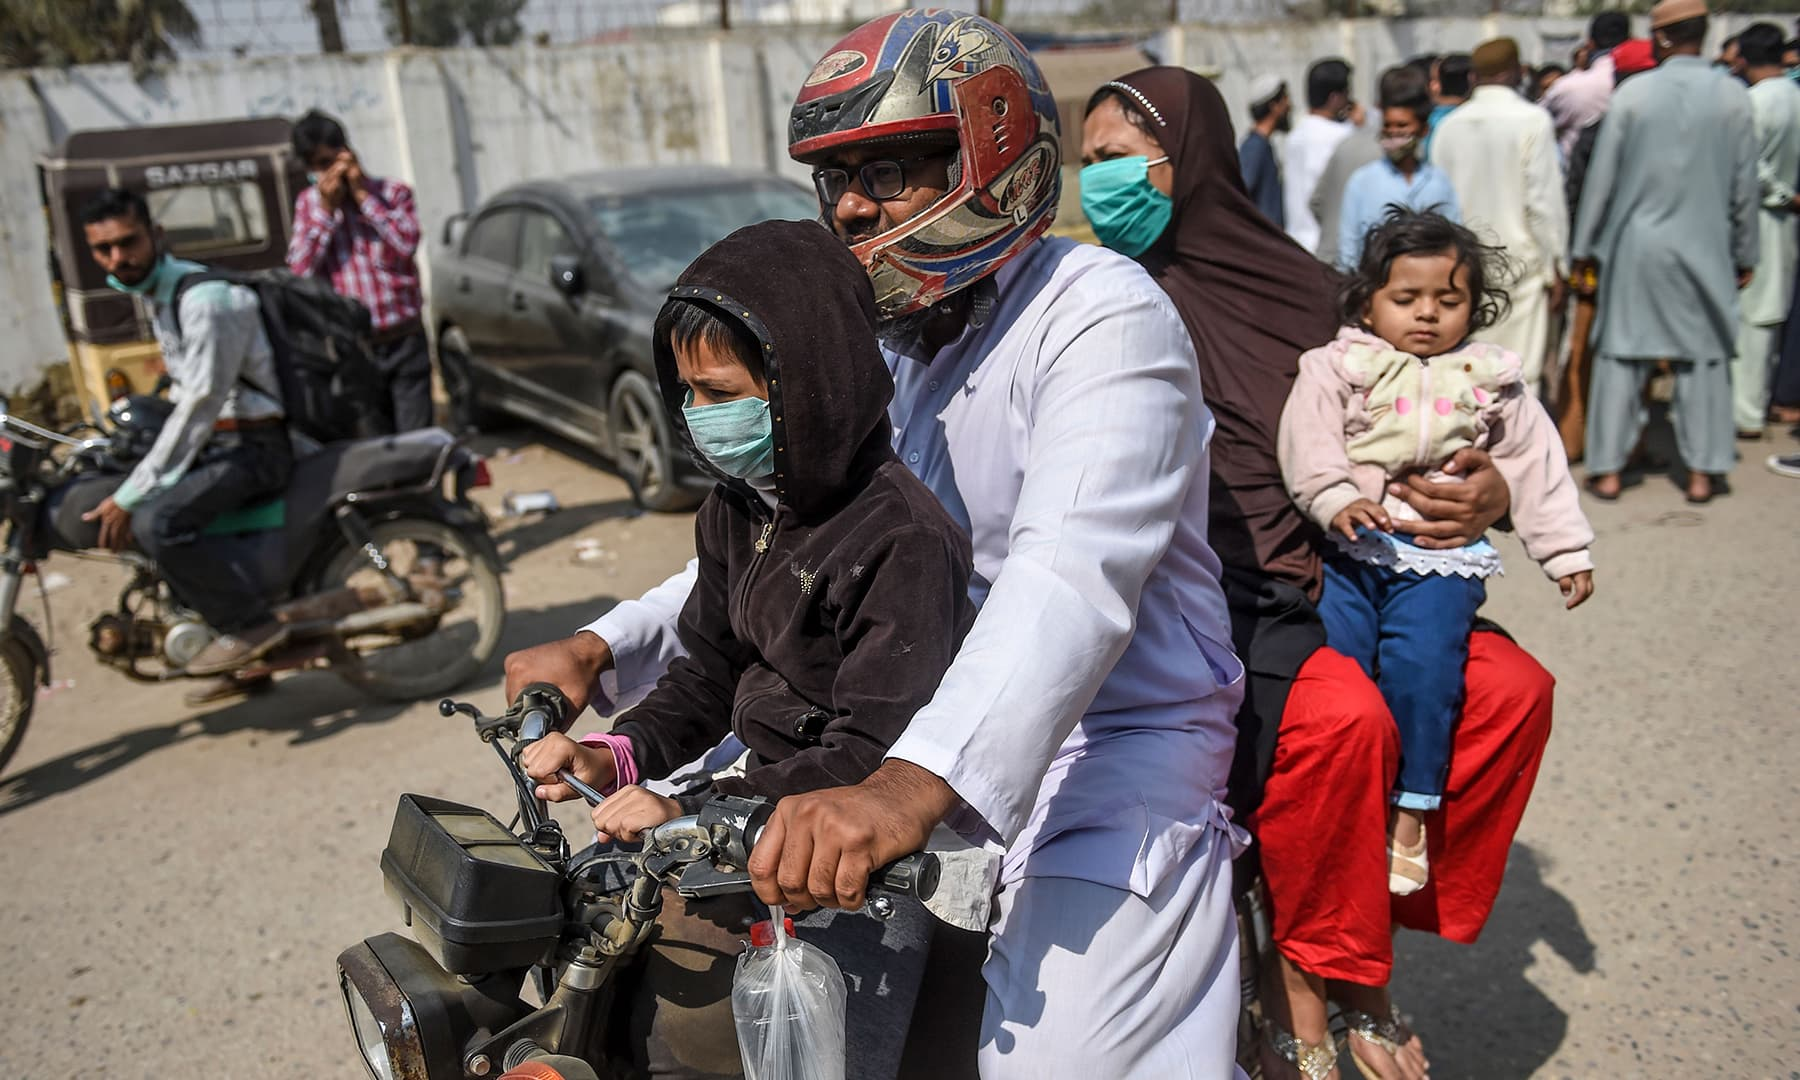 A family arrives at a hospital in Karachi on February 18 after a gas leak killed more than a dozen people. — AFP